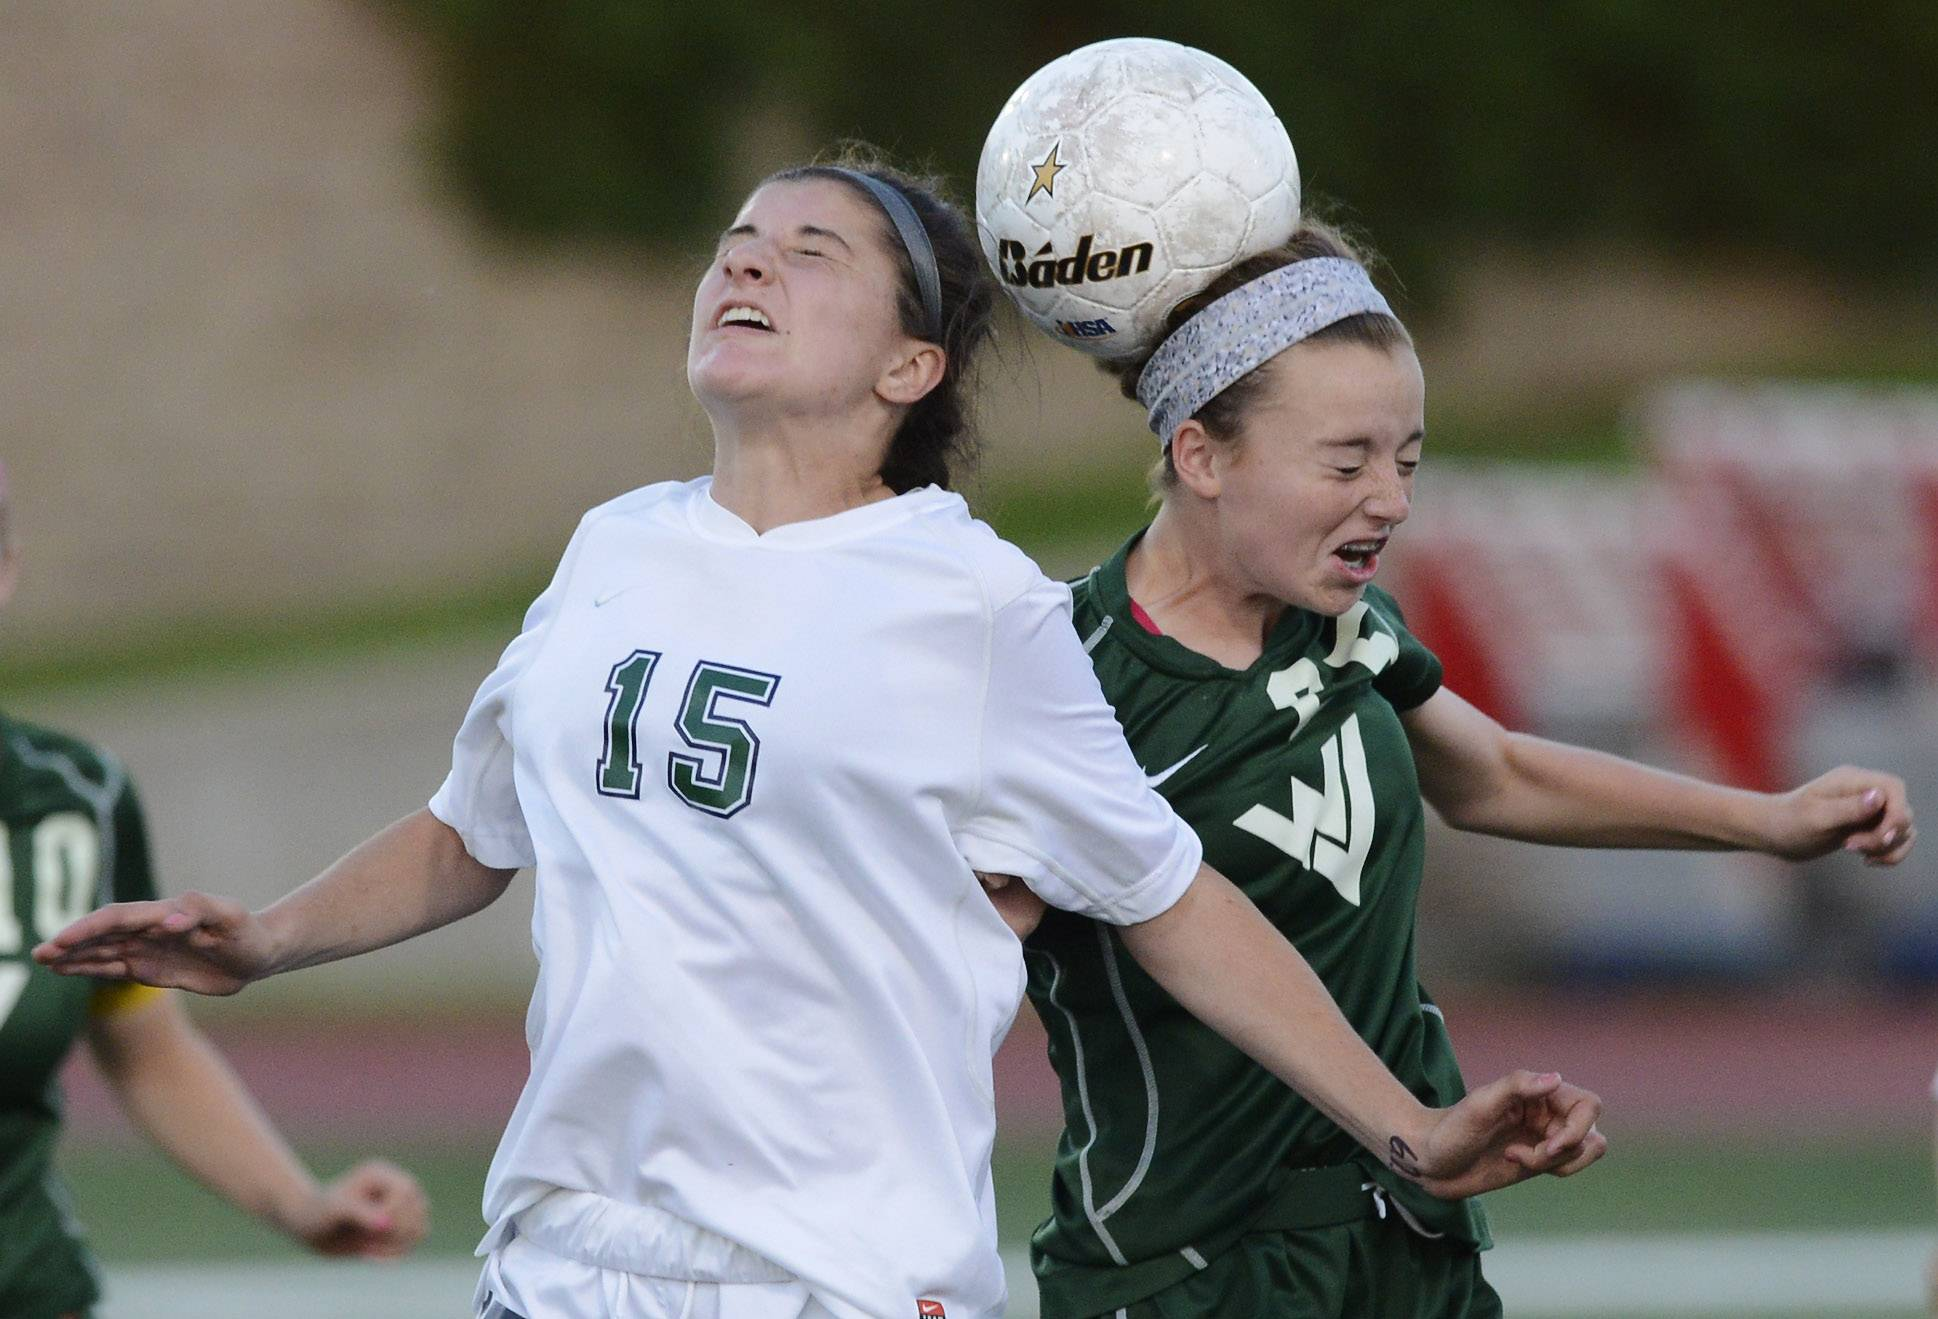 New Trier's Celia Frei, left, and Waubonsie Vallye's Sarah Griffith leap for a header during the girls soccer Class 3A state semifinal at North Central College in Naperville Friday.